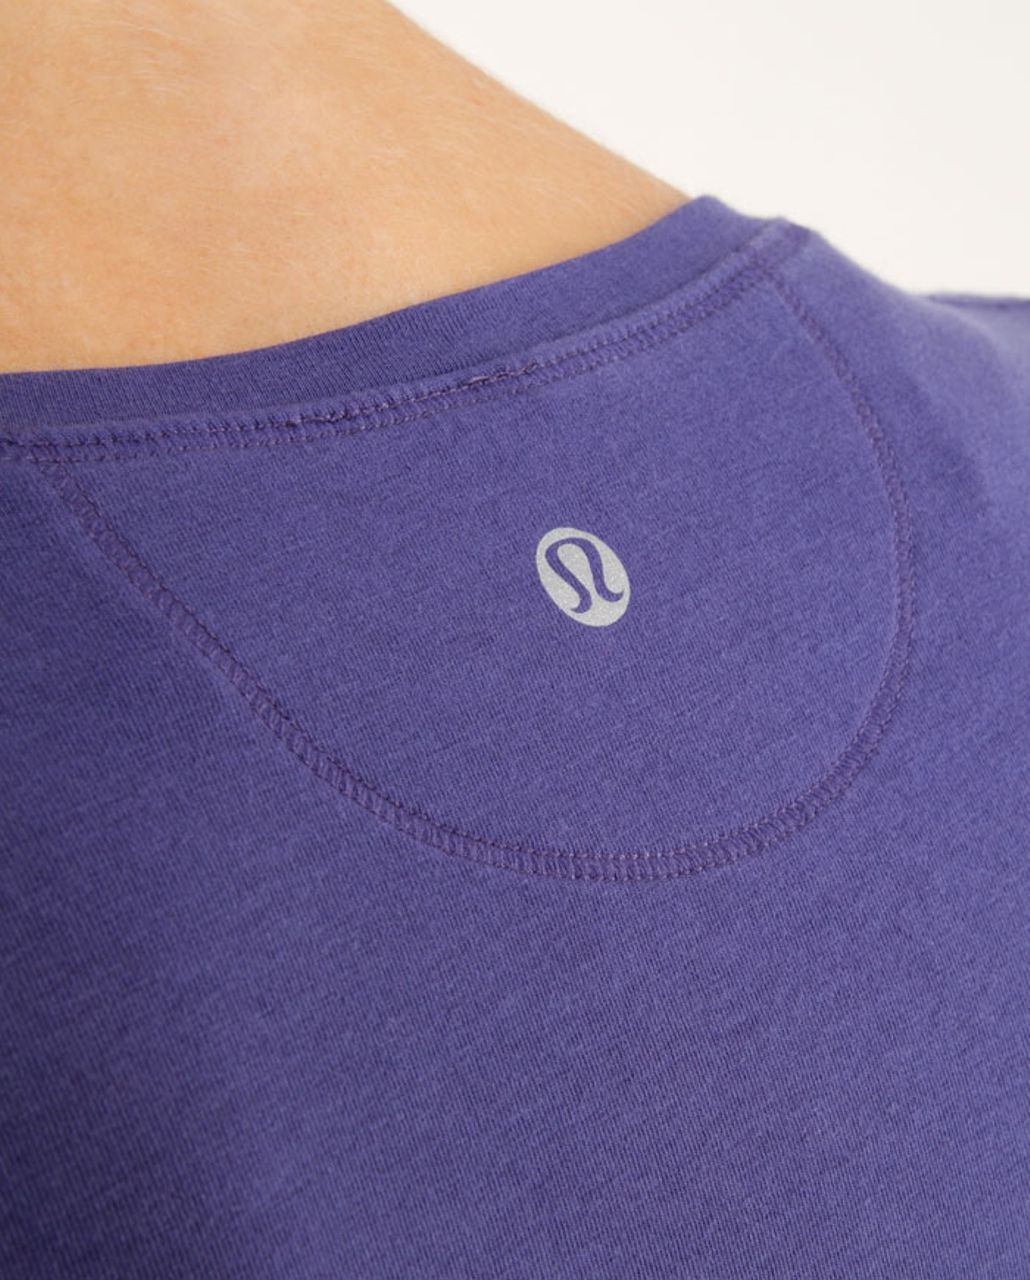 Lululemon Lively Crewneck Tee *Vitasea - Royalty